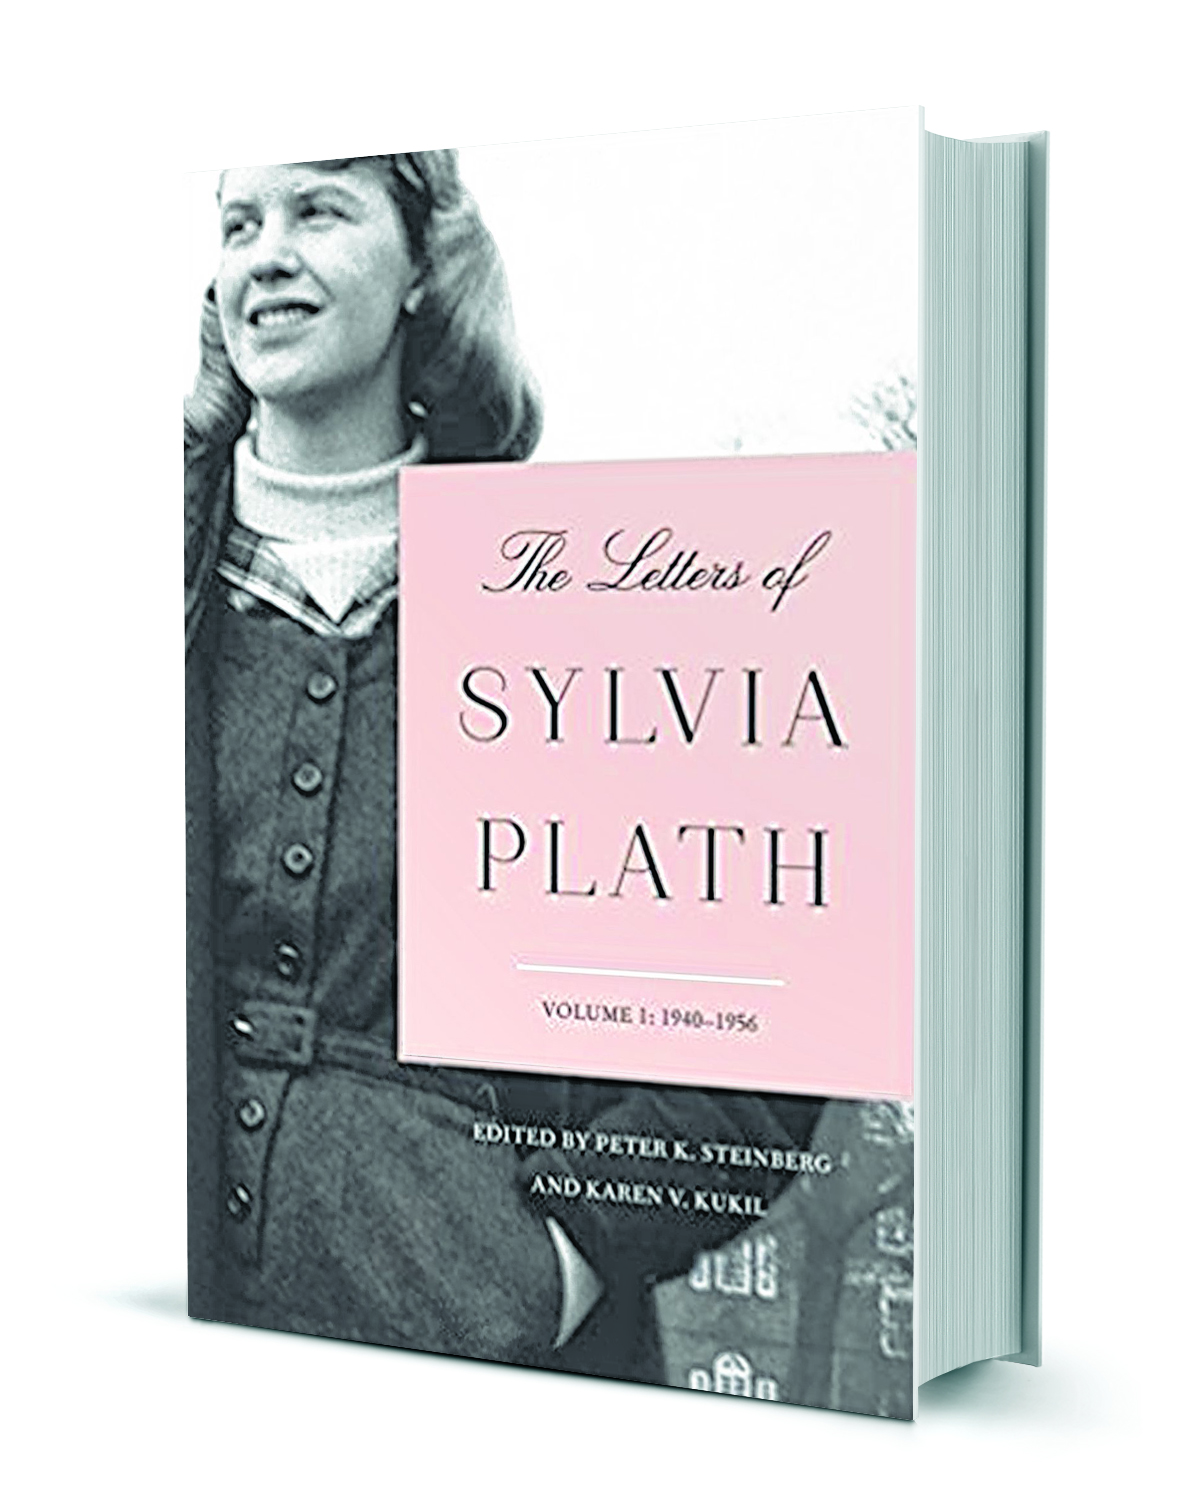 a biography of sylvia plath Early life sylvia plath was born in boston, massachusetts, on october 27, 1932, to otto and aurelia plath her father, a professor of biology (the study of plant and animal life) at boston university and a well-respected authority on bees, died when she was eight.